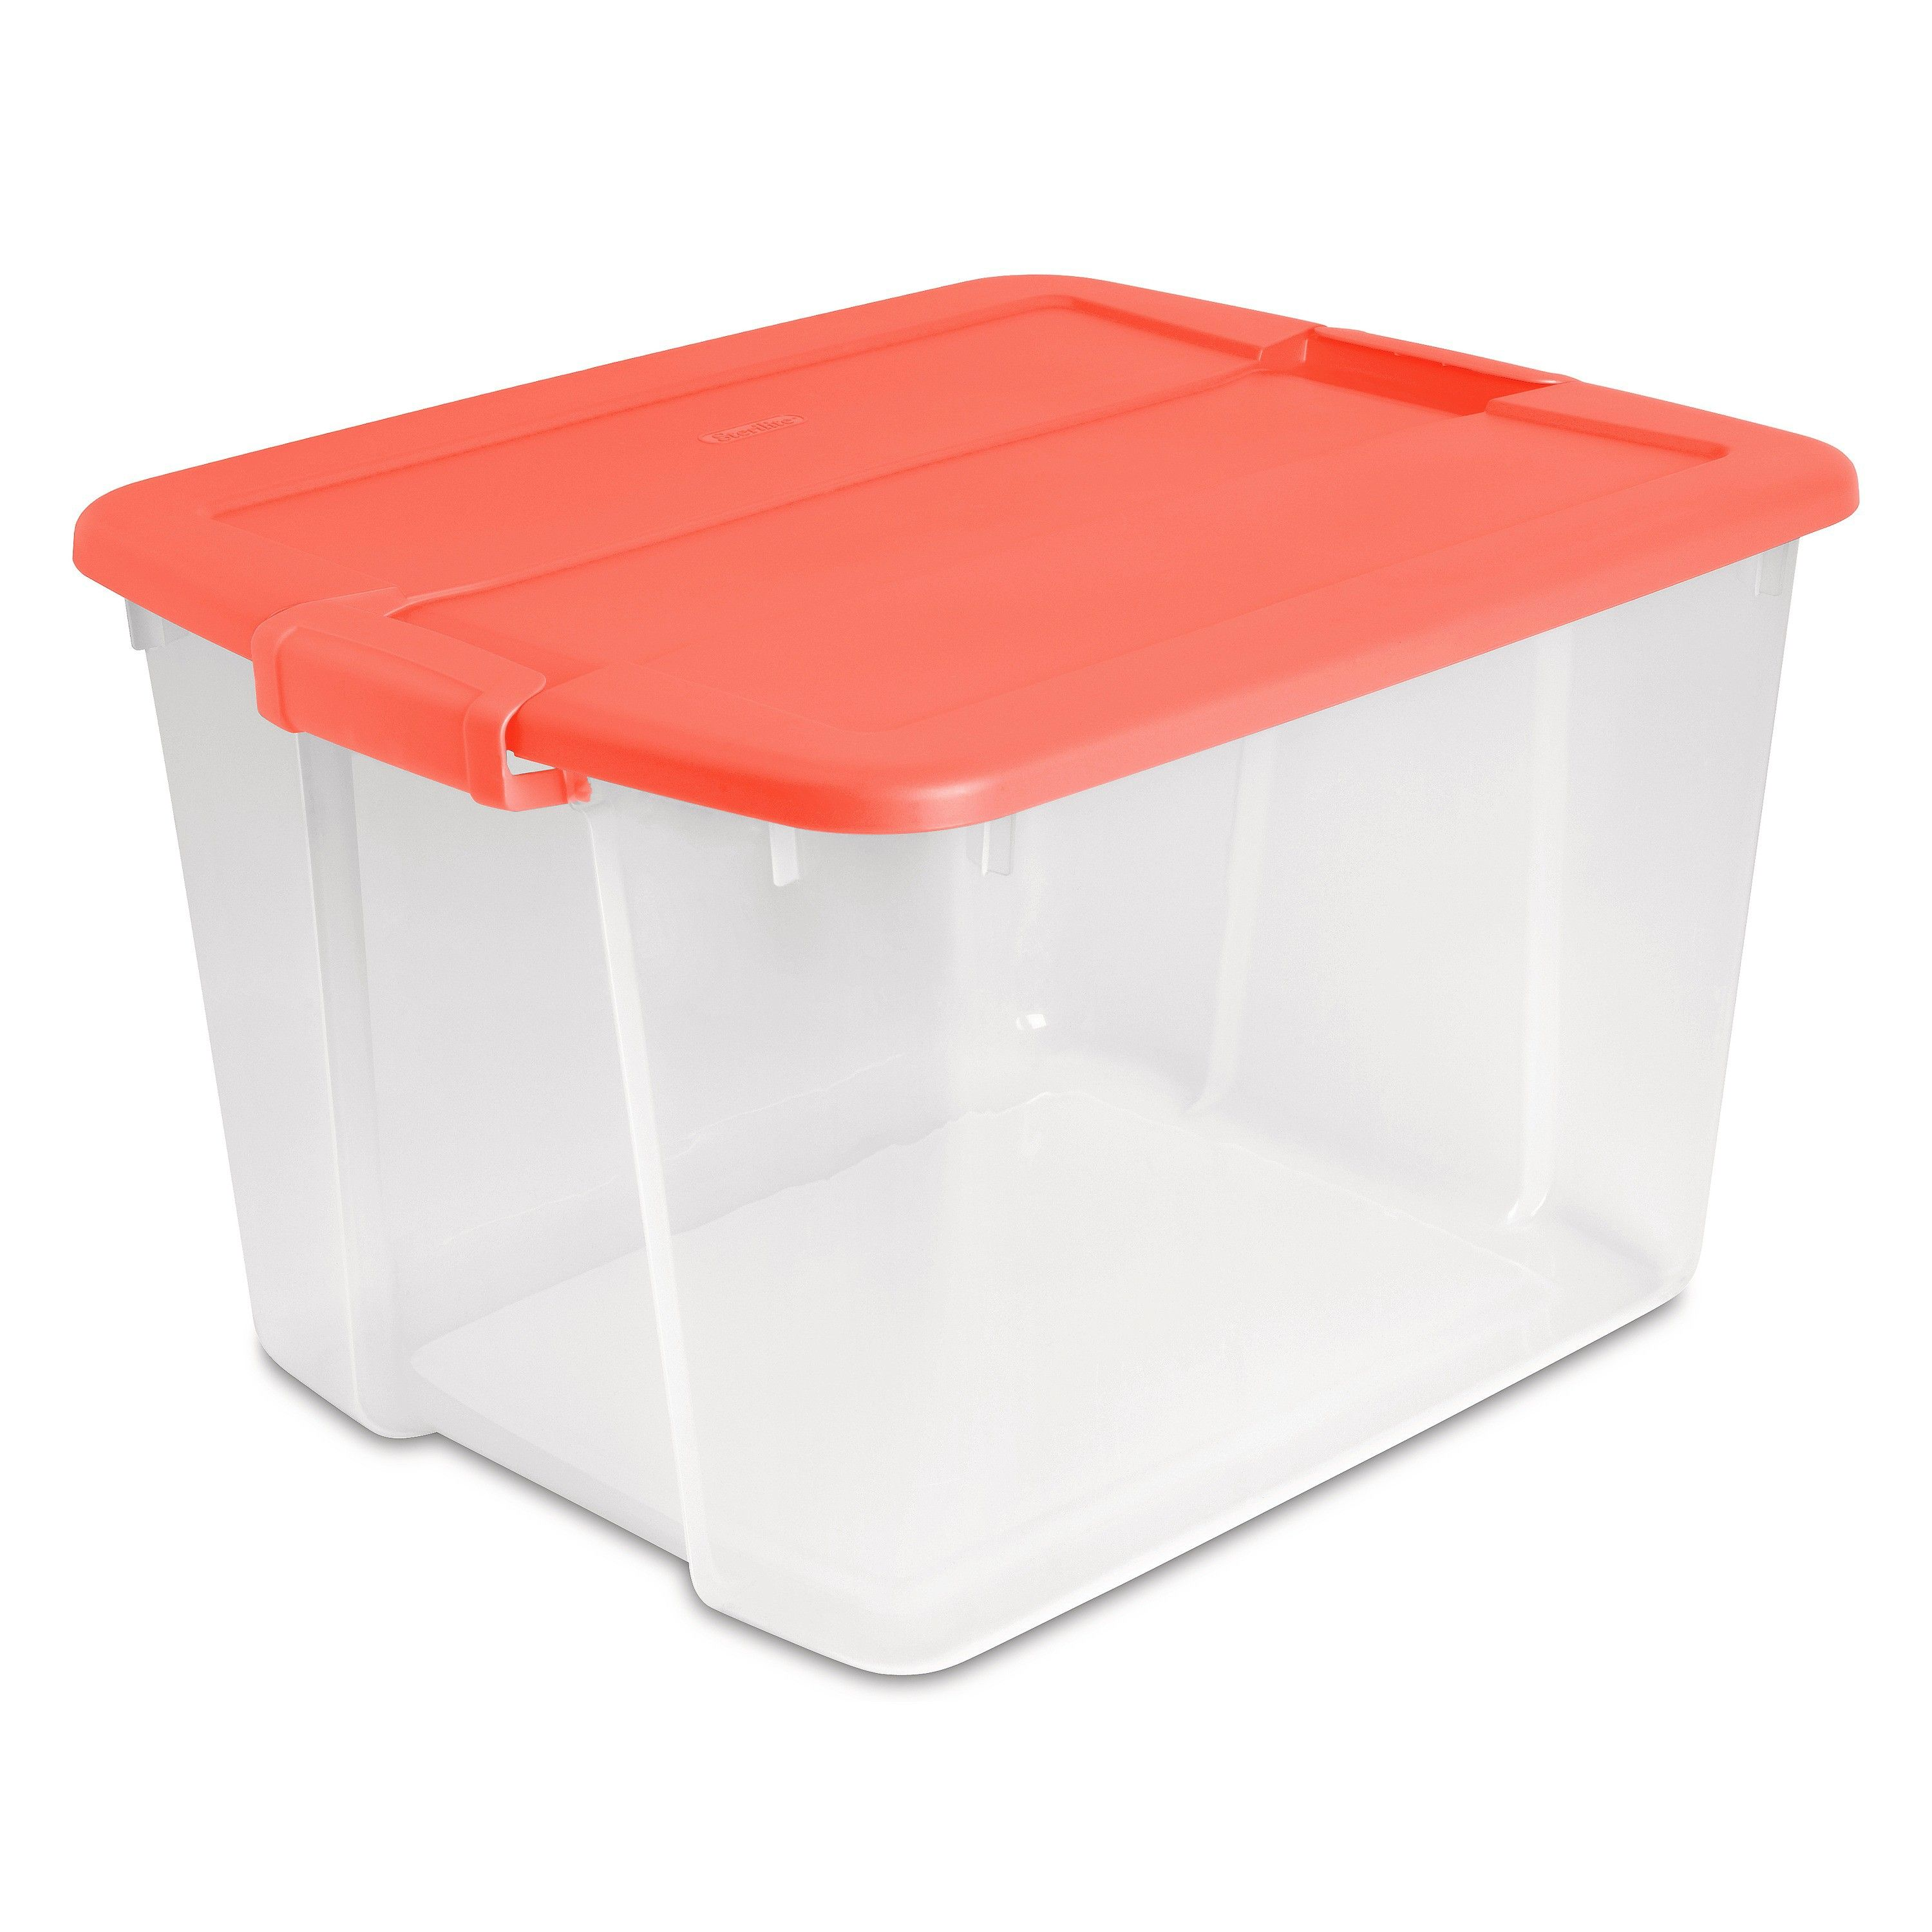 also and interior for in target any small containers bins lockable ideal is storage tubs space tub plastic crates items storing the sterilite